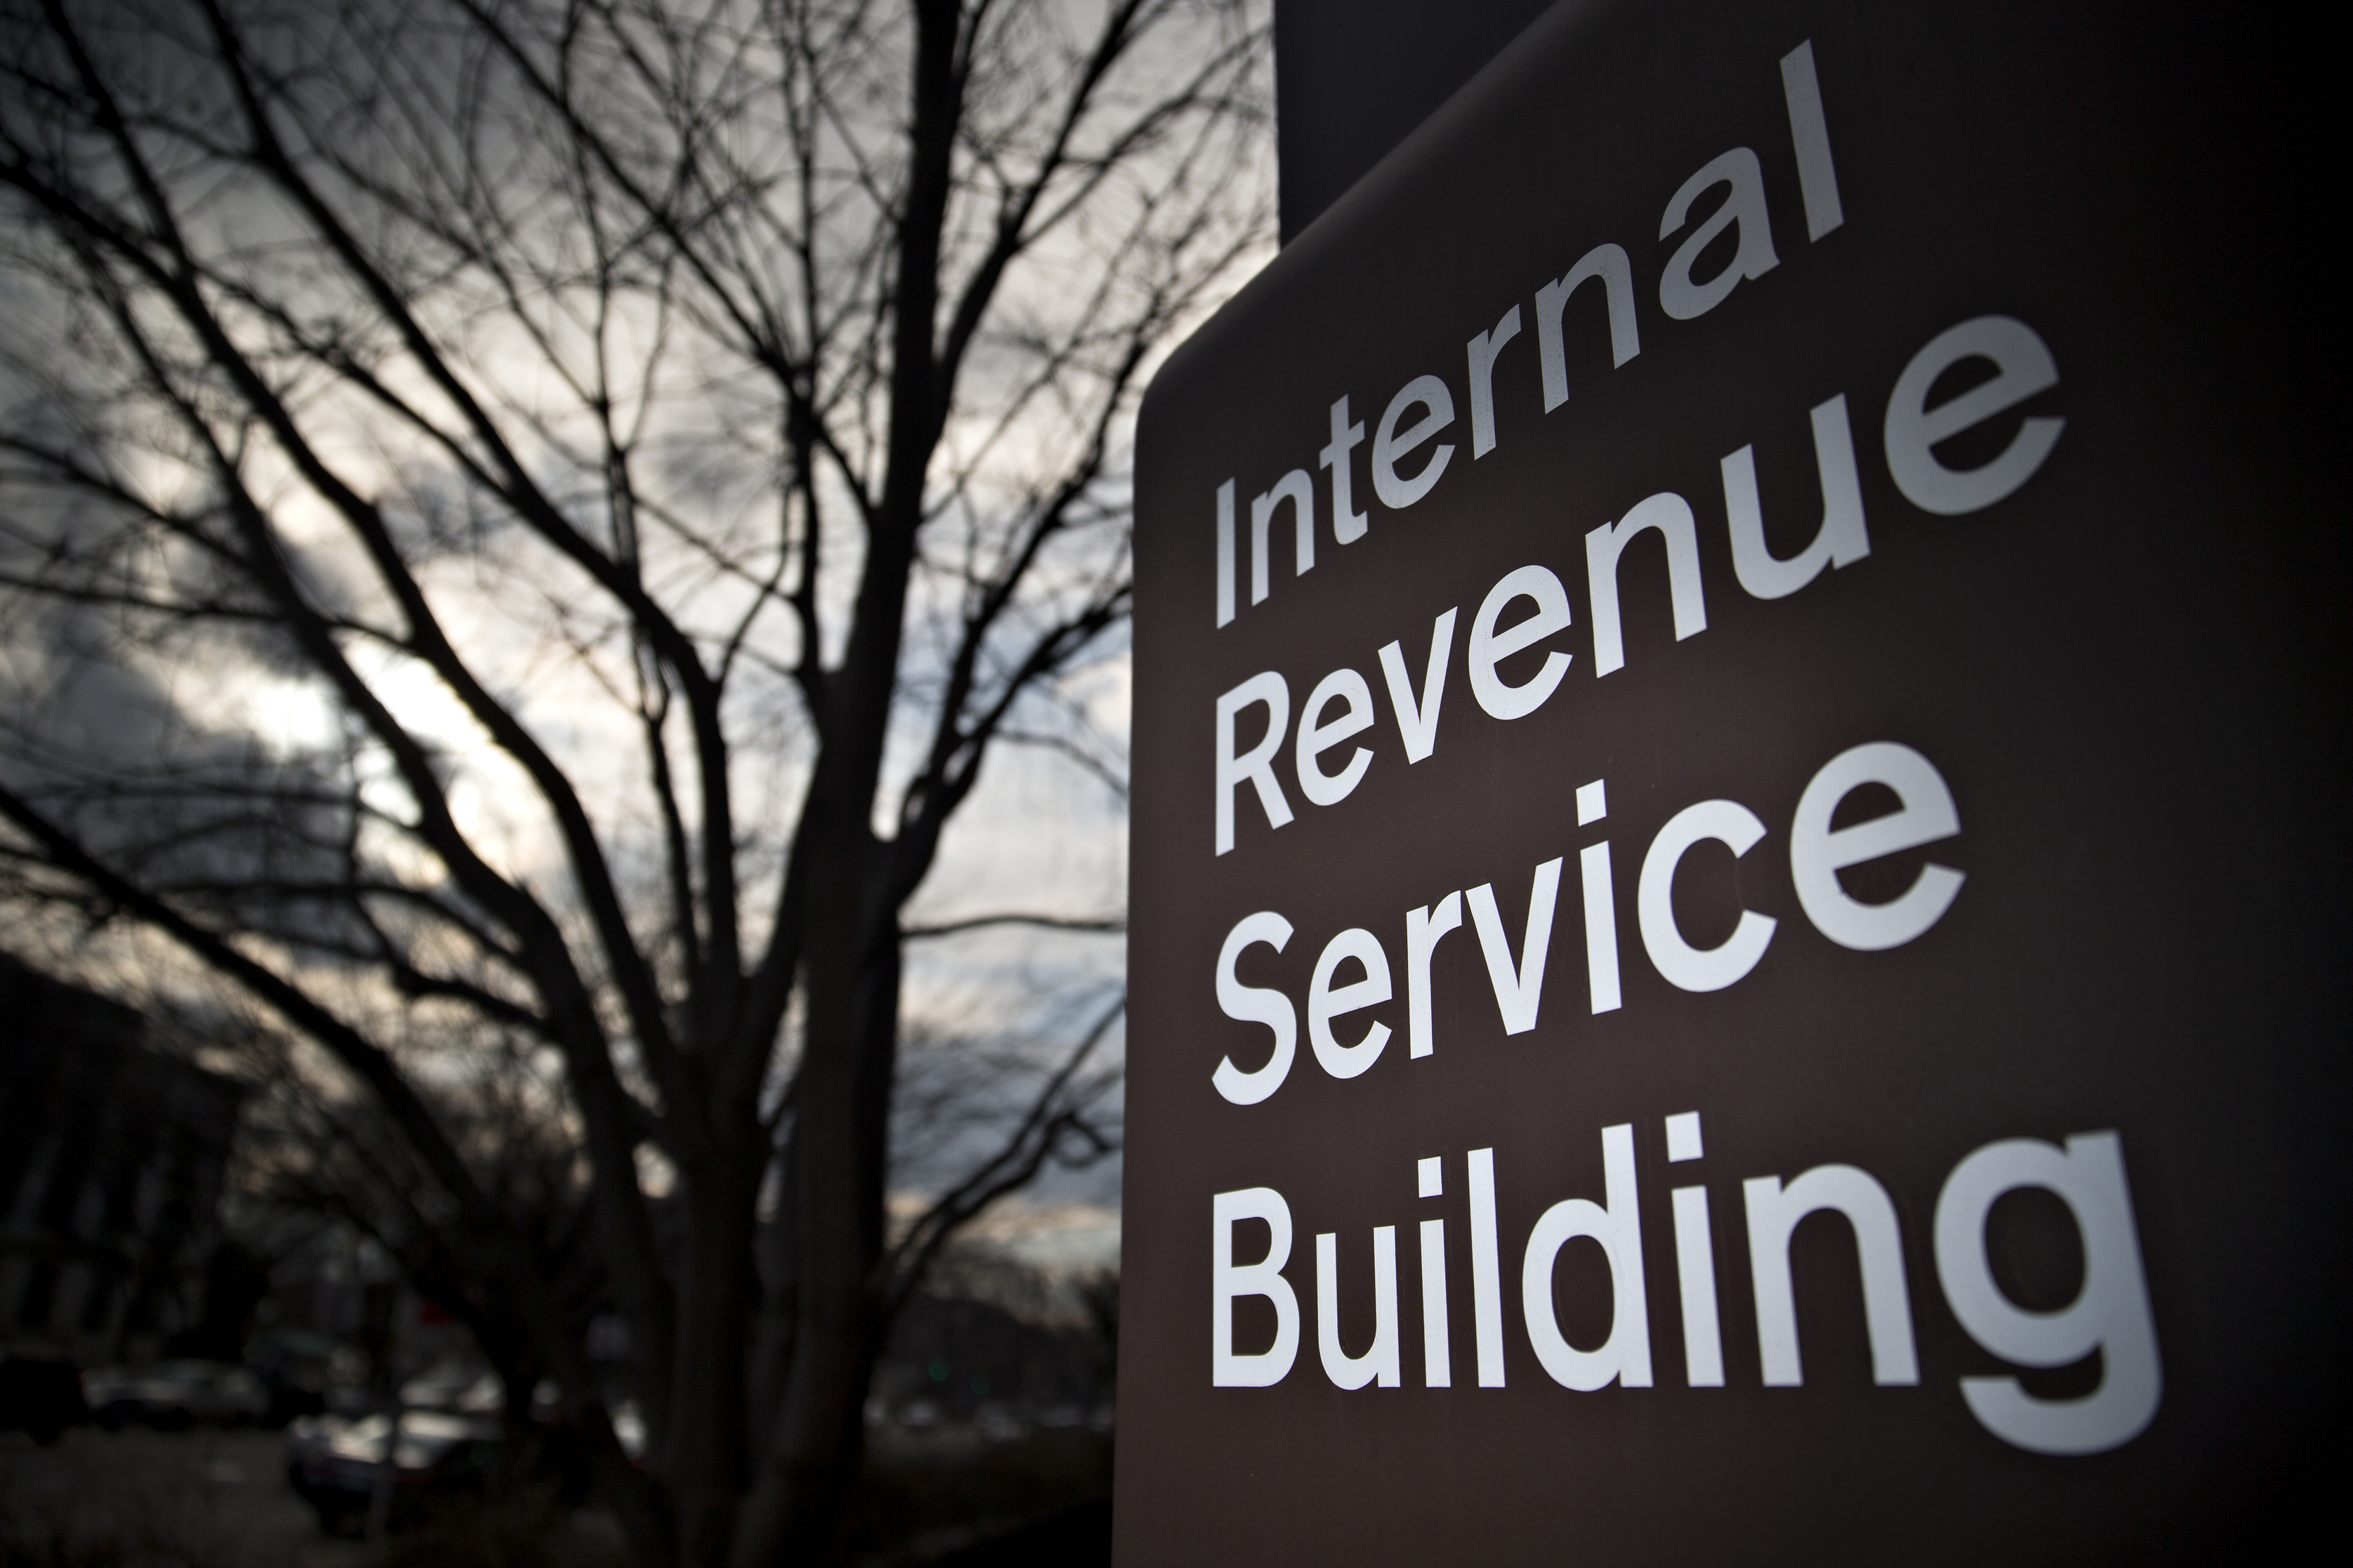 Signage for the Internal Revenue Service (IRS) stands outside the IRS headquarters building in Washington, D.C., U.S., on Wednesday, Feb. 17, 2016.